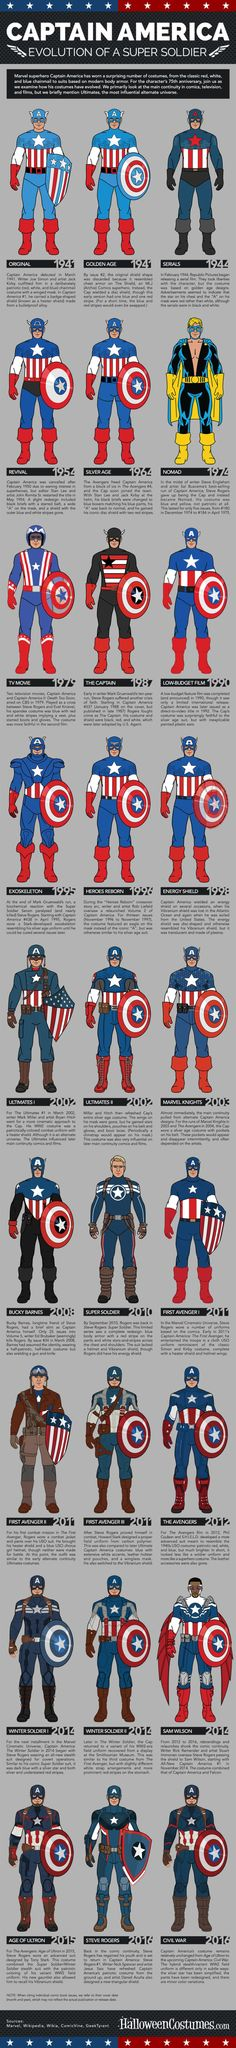 captain-america-evolution-of-a-super-soldier-infographic